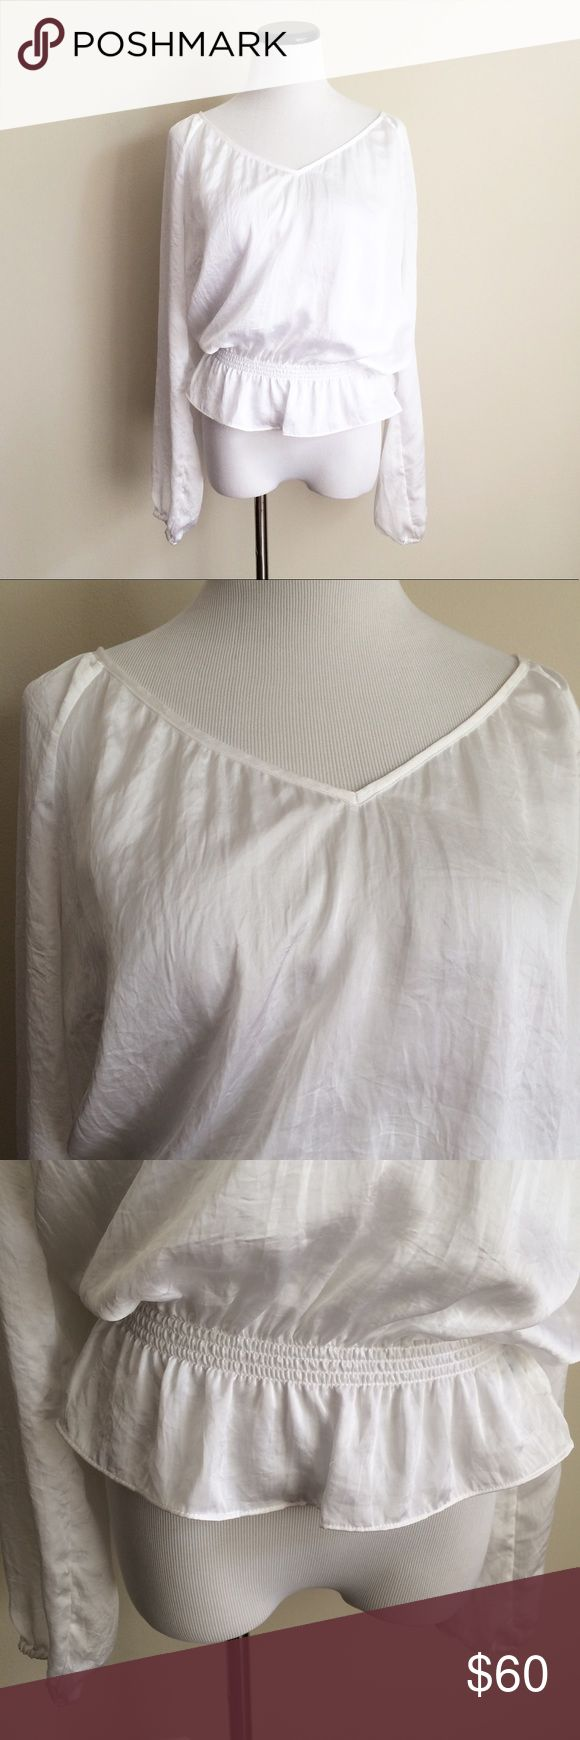 "MICHAEL KORS White ruffle long sleeve Peplum Top Gently worn and has been dry cleaned. White 100% polyester peplum top. Slight v-neck. Length 23"". Chest 21.5"". MICHAEL Michael Kors Tops Blouses"